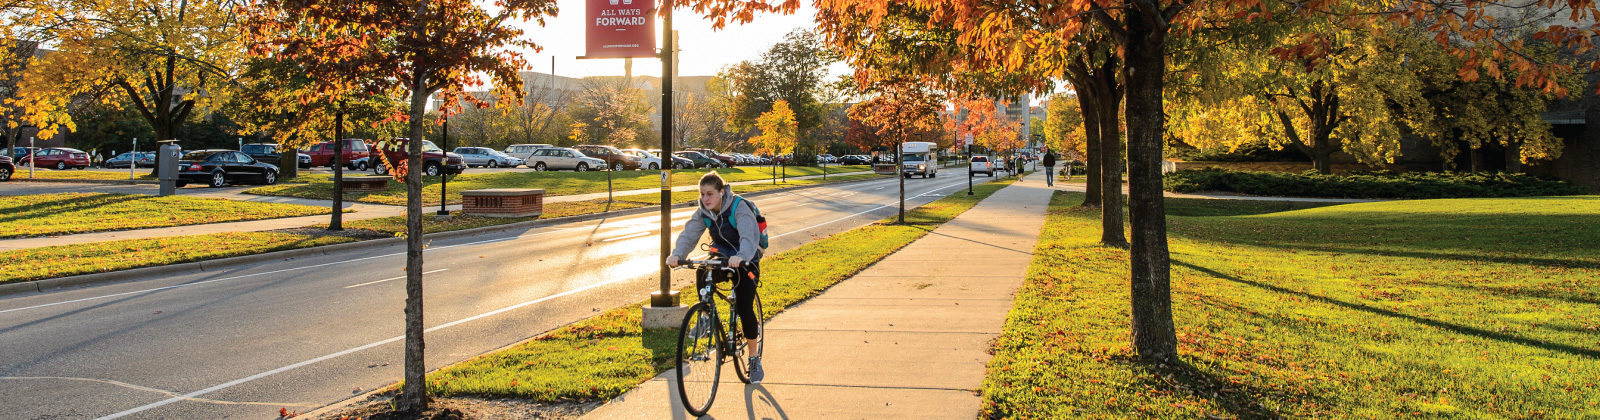 Student riding bicycle on UW-Madison campus during fall season